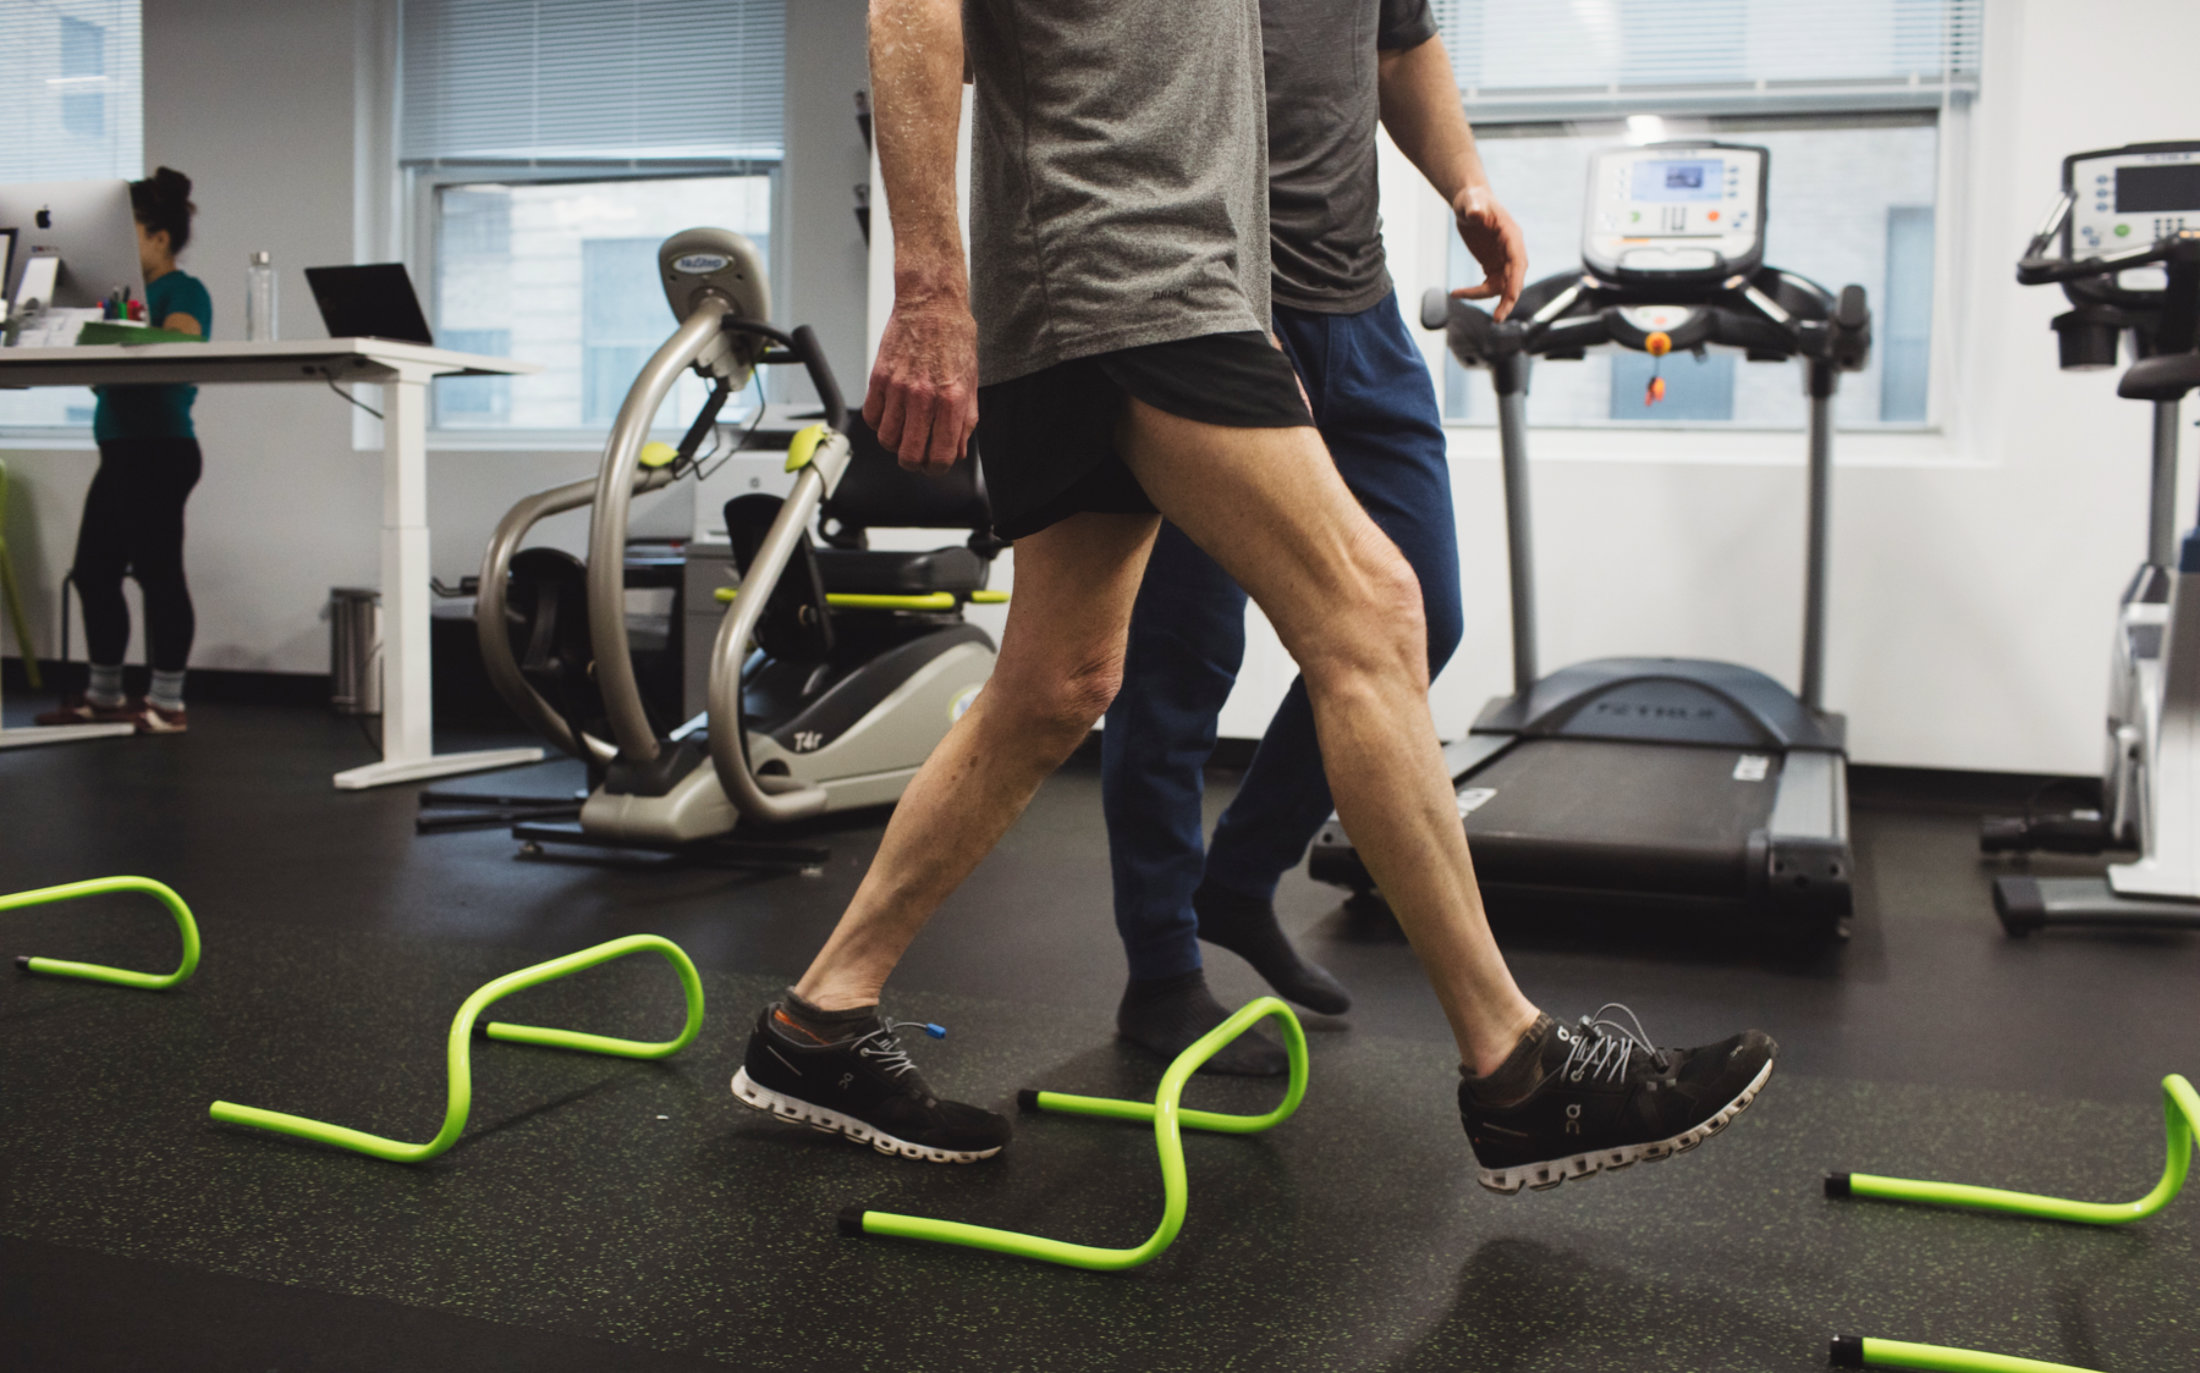 Fitness and Rehabilitation workouts can improve your balance